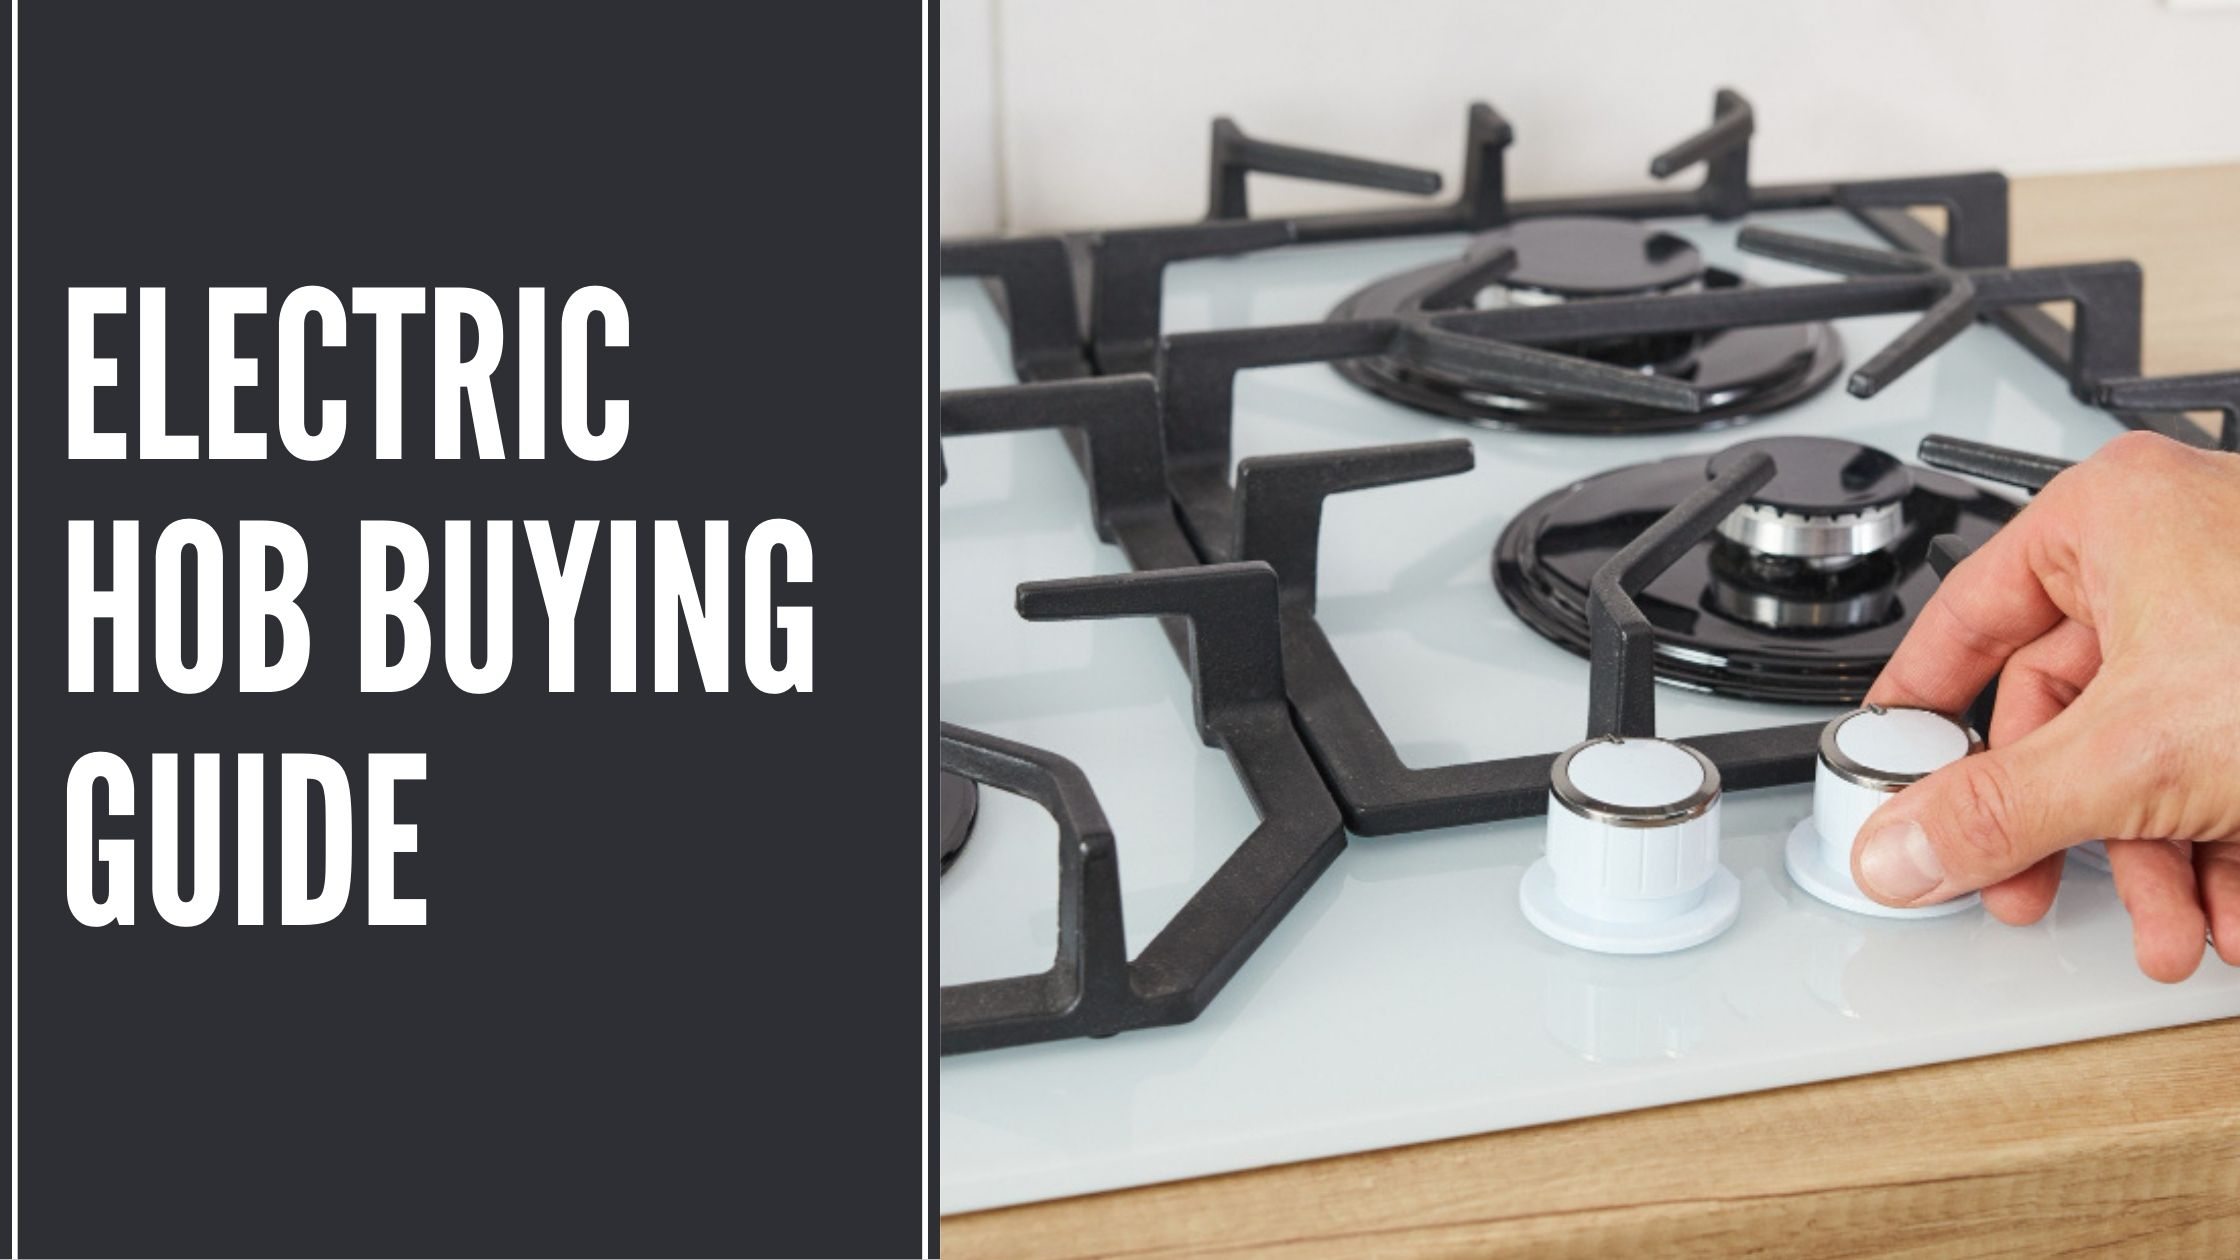 Electric Hob Buying Guide